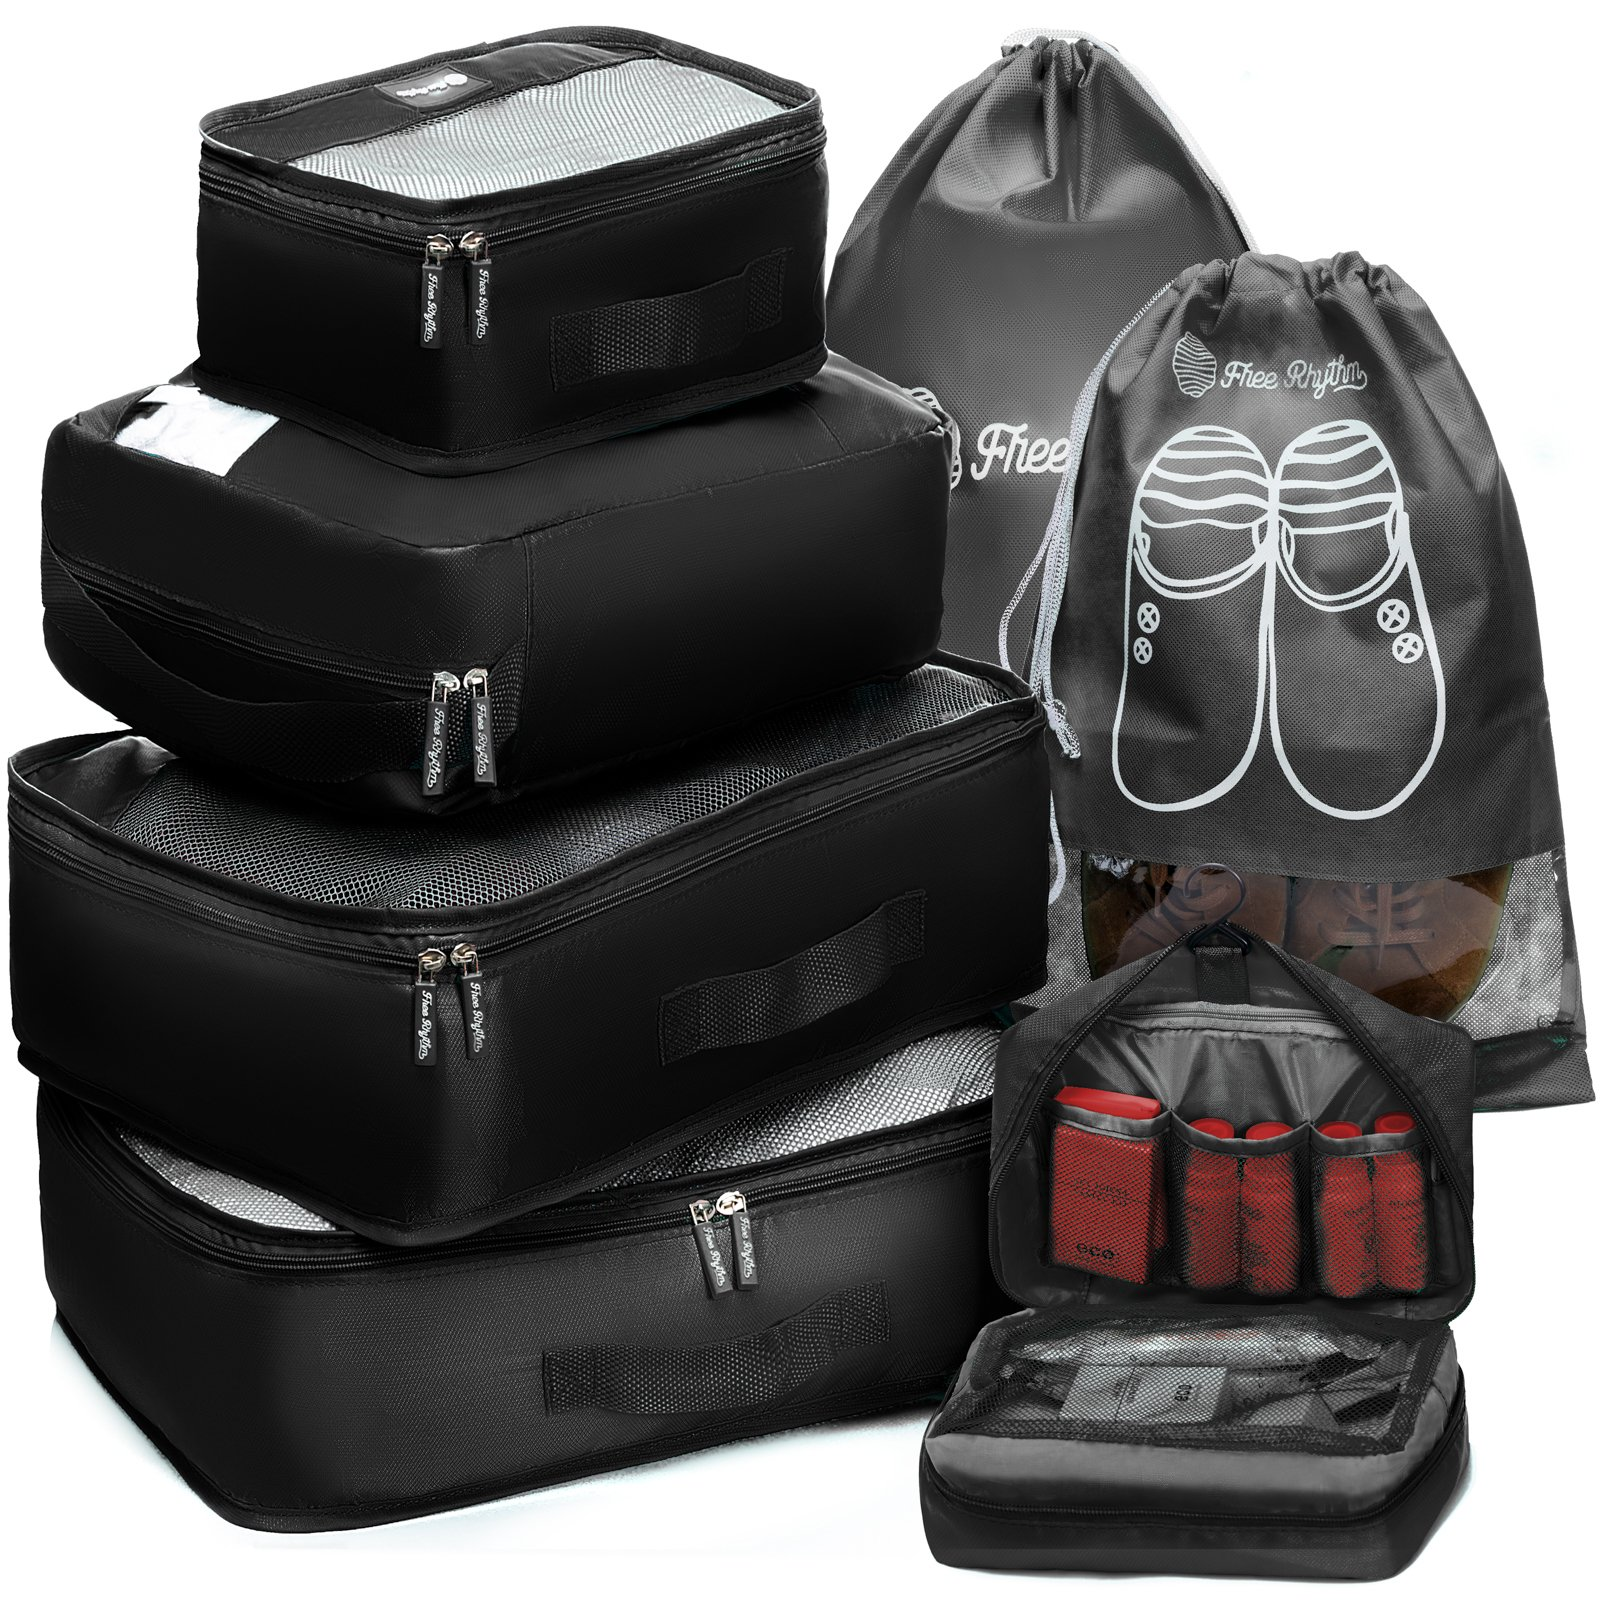 Packing Cubes Travel Set 7 Pc Luggage Carry-On Organizers Toiletry & Laundry Bag by Free Rhythm (Image #1)